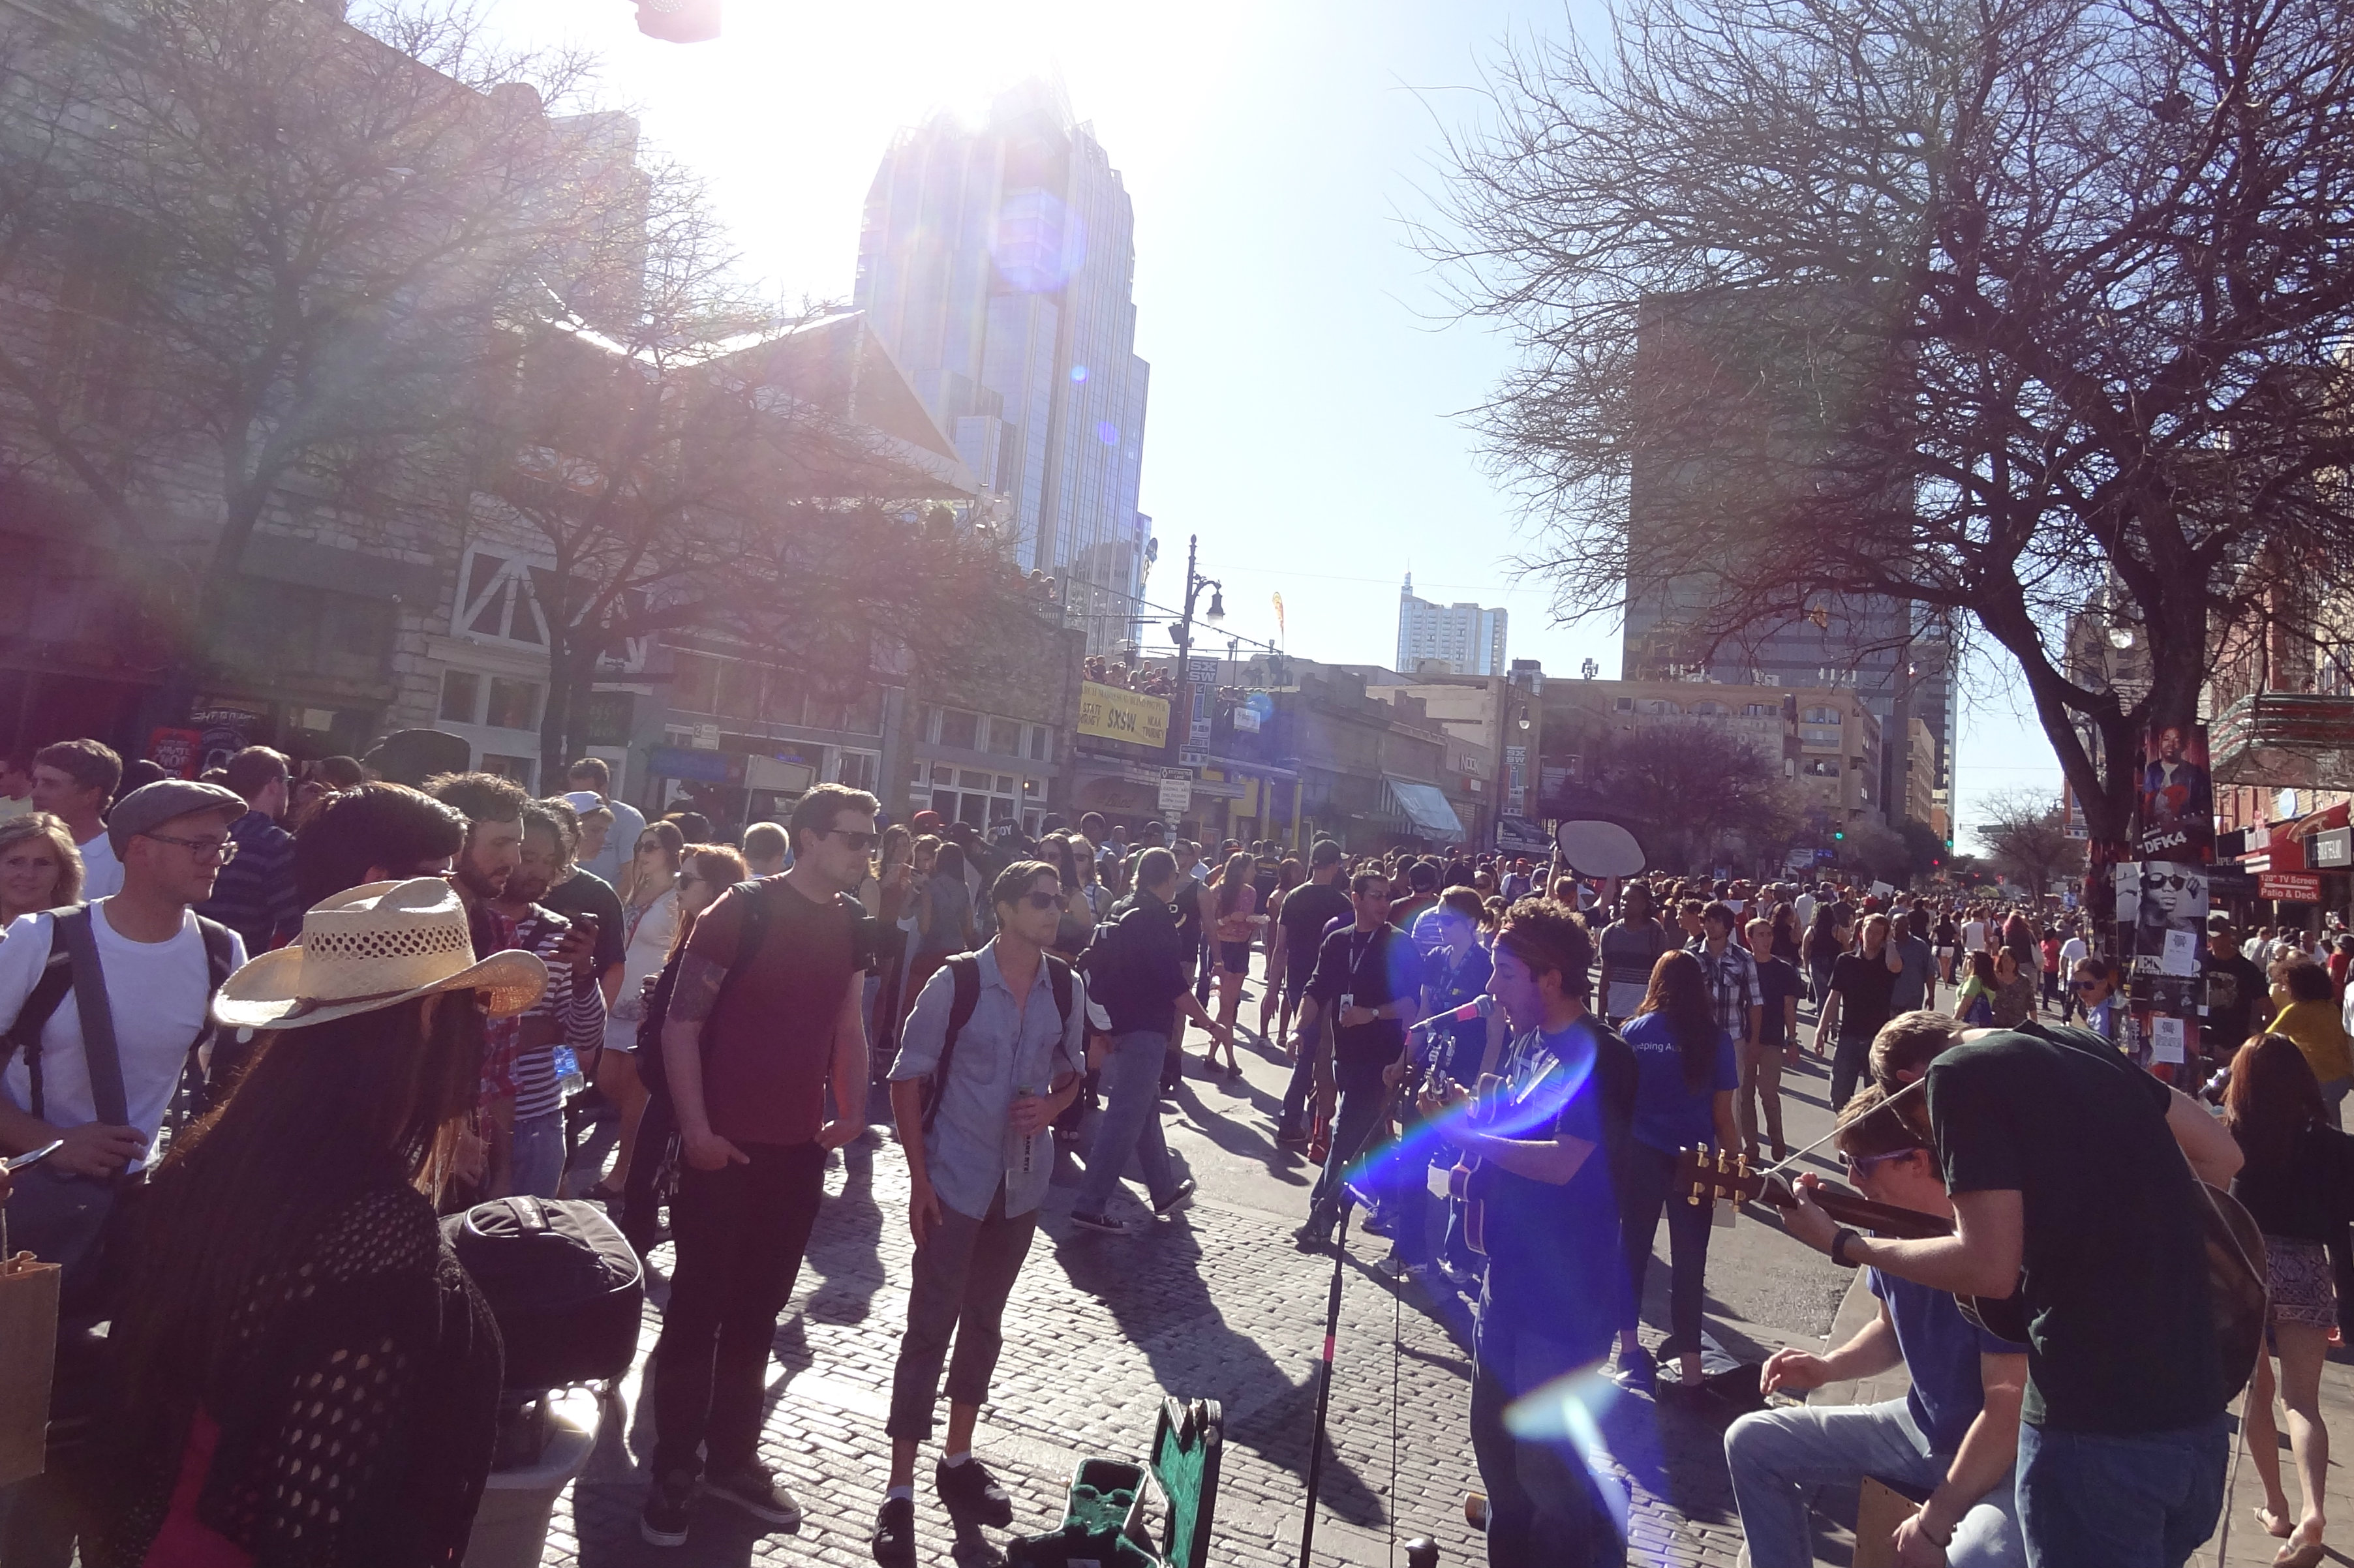 Photo: SXSW band performs in Sixth Street 3-2